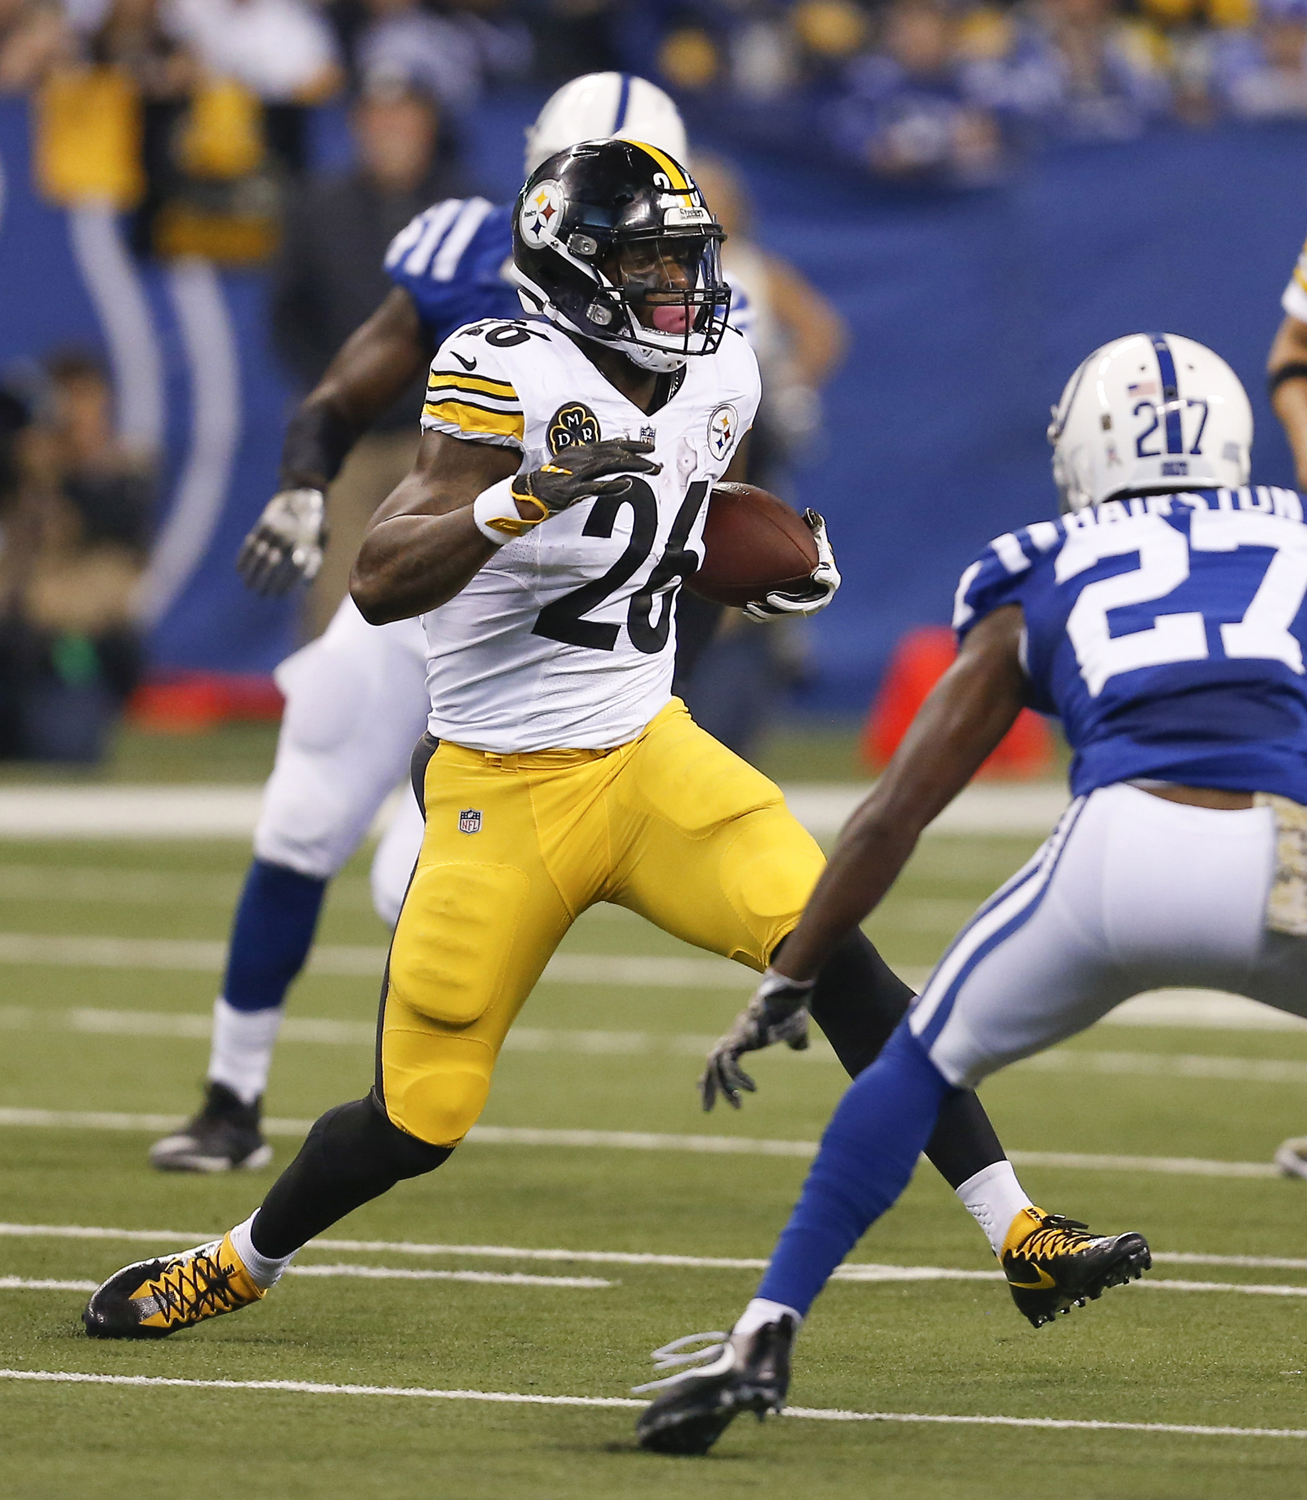 Pittsburgh Steelers running back Le'Veon Bell (26) runs upfield in the first half of the team's game against the Indianapolis Colts on Nov. 12, 2017, in Indianapolis.